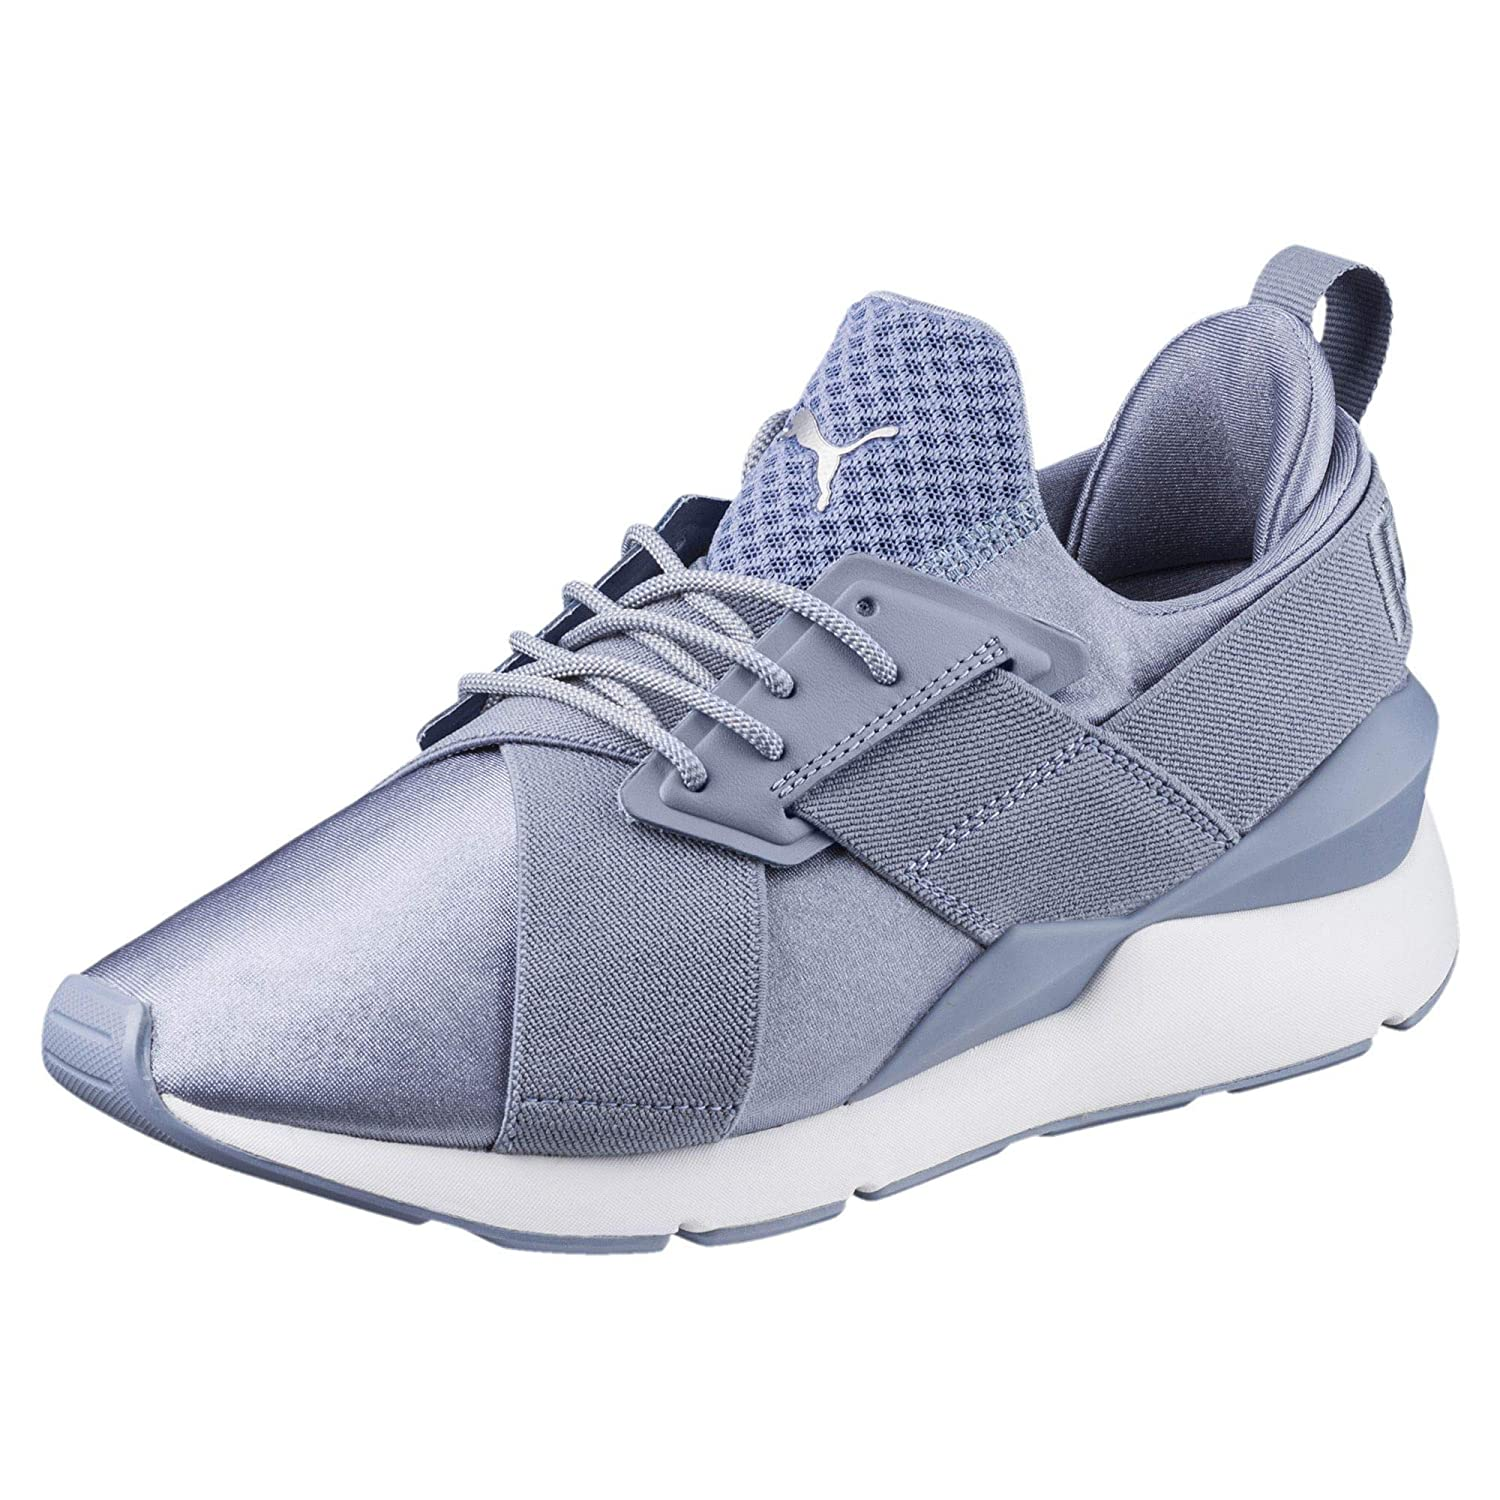 Puma Damen Turnschuhe Muse Satin EP EP EP WN's – Turnschuhe im Satin-Look mit schlanker, femininer Silhouette Muse Satin EP WN's  32f93f